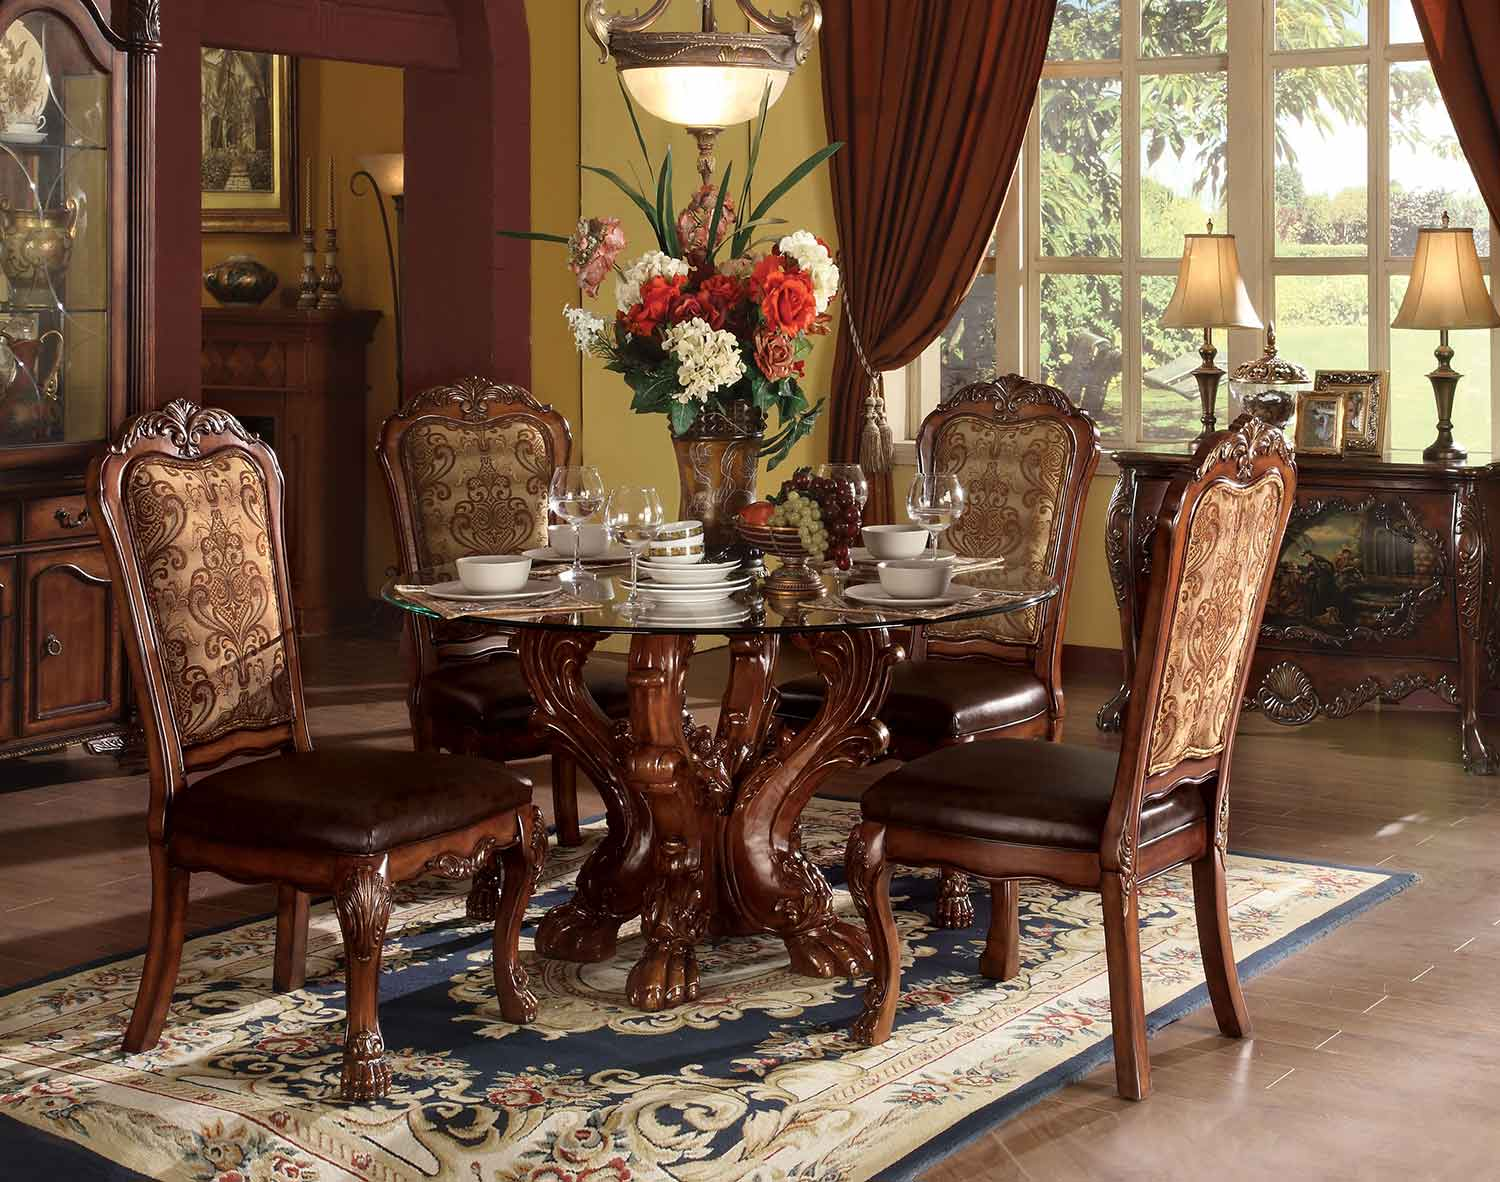 Acme Dresden Dining Set with Single Pedestal - Cherry Oak